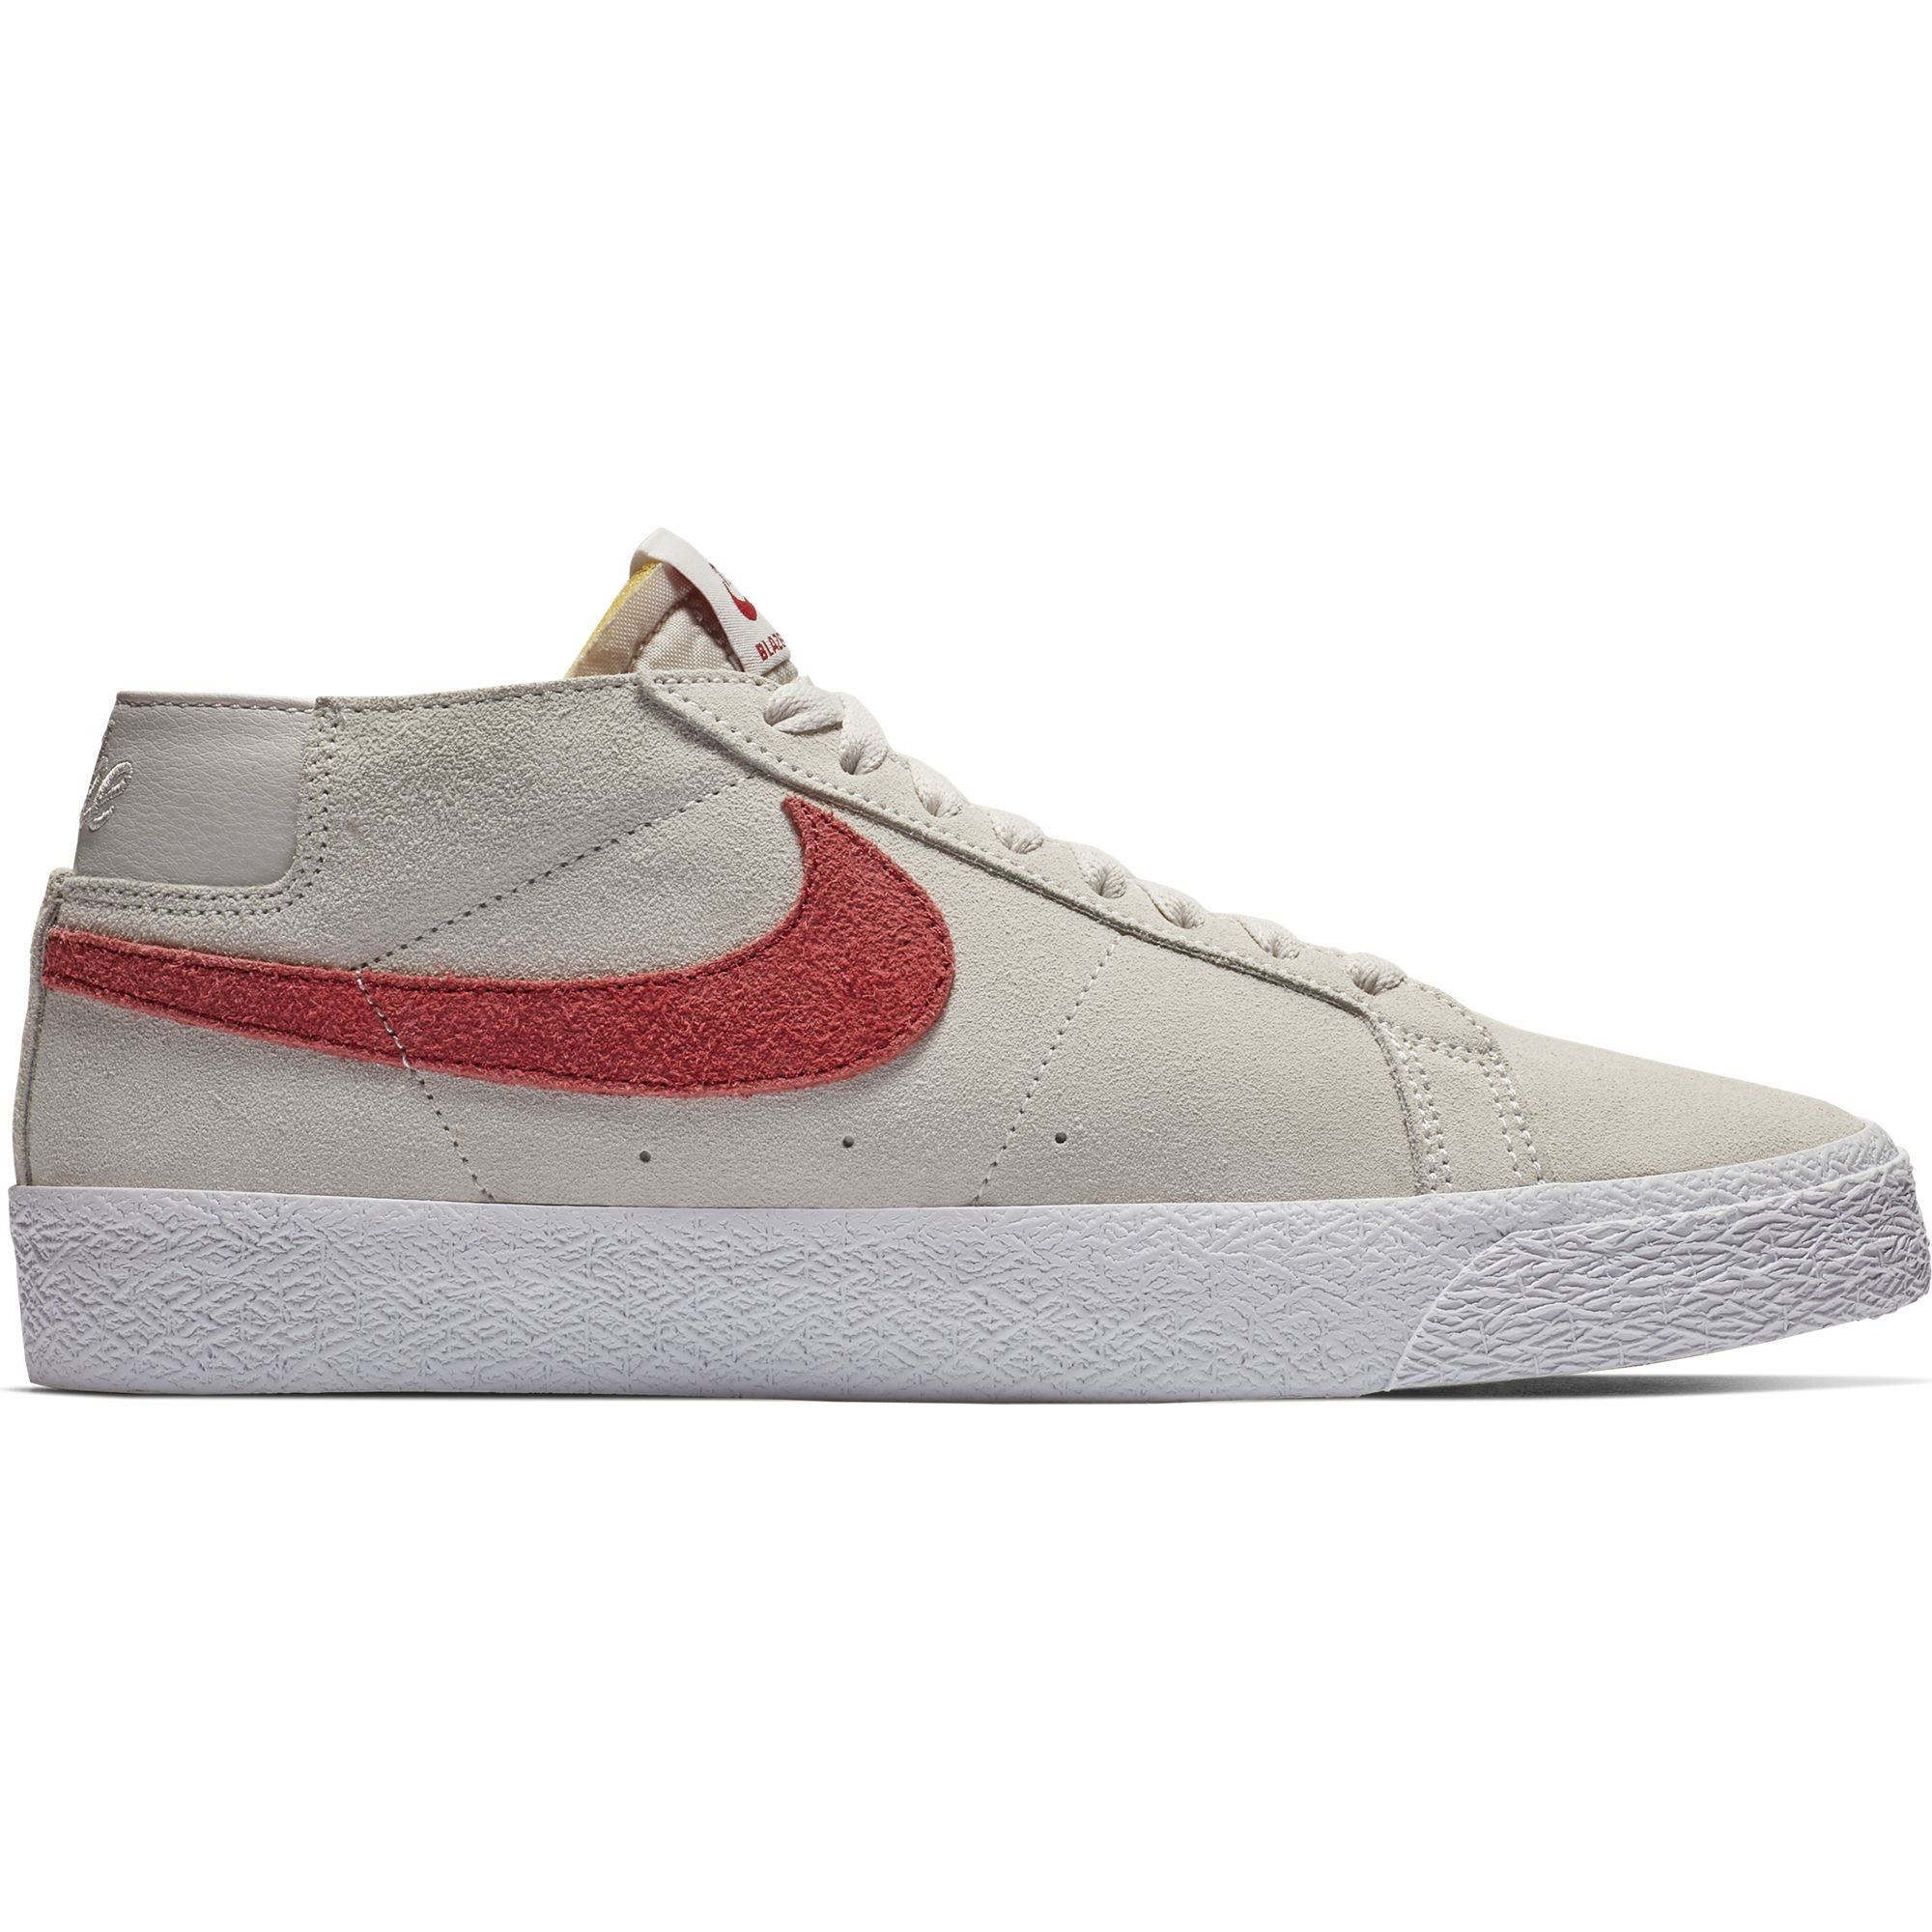 Chaussure Nike Sb Blazer Chukka Vast Grey Team Crimson